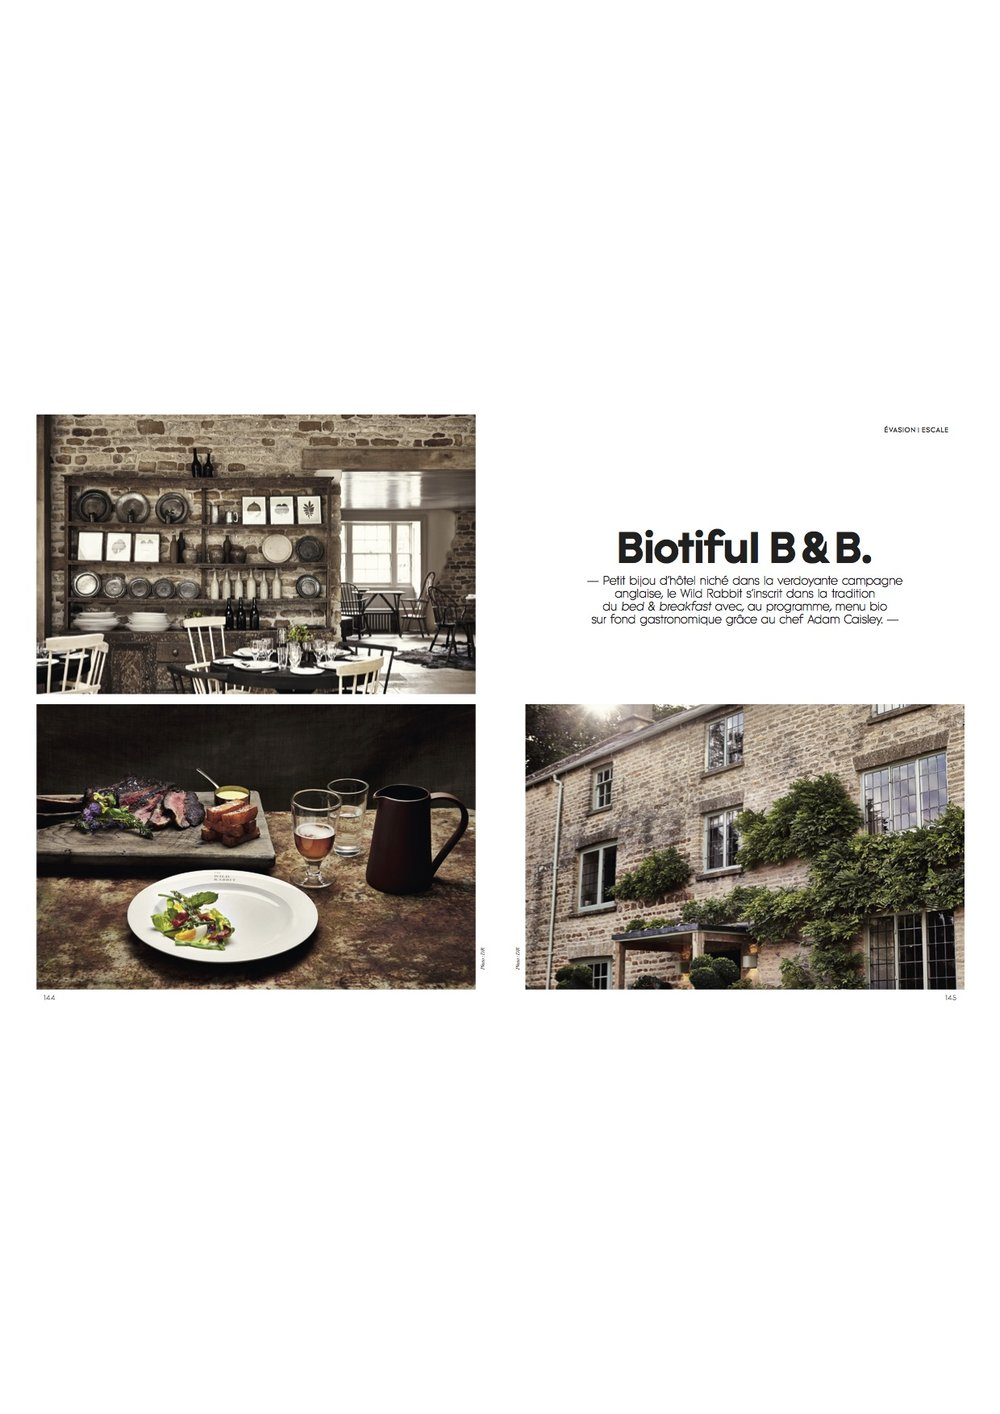 The Wild Rabbit in the Cotswolds